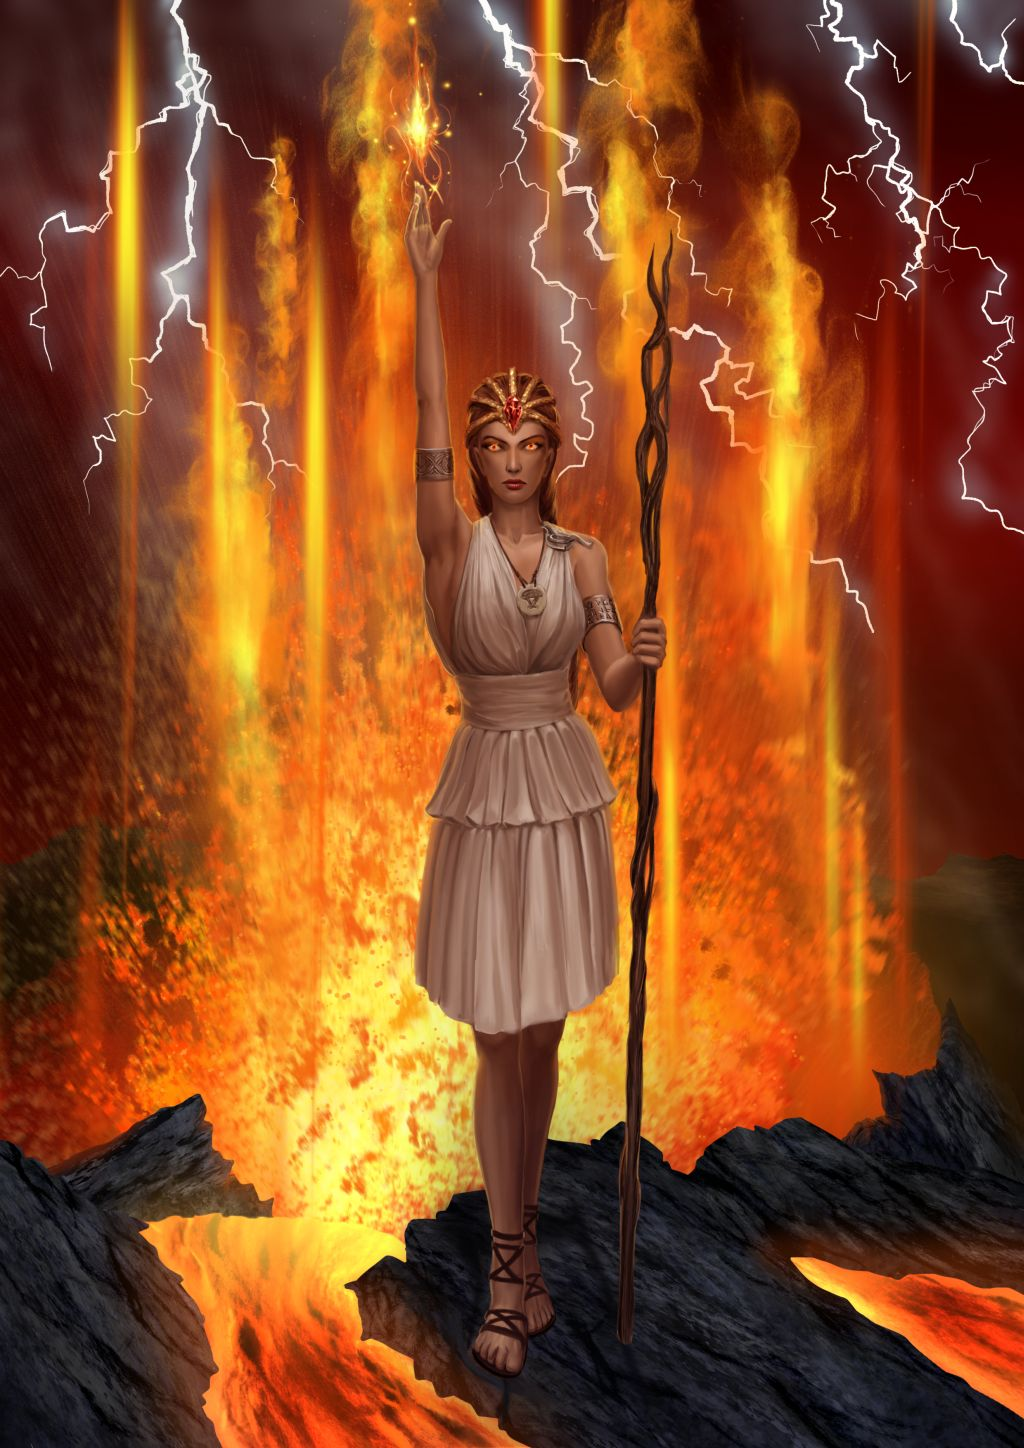 Artemis, Nature's Wrath